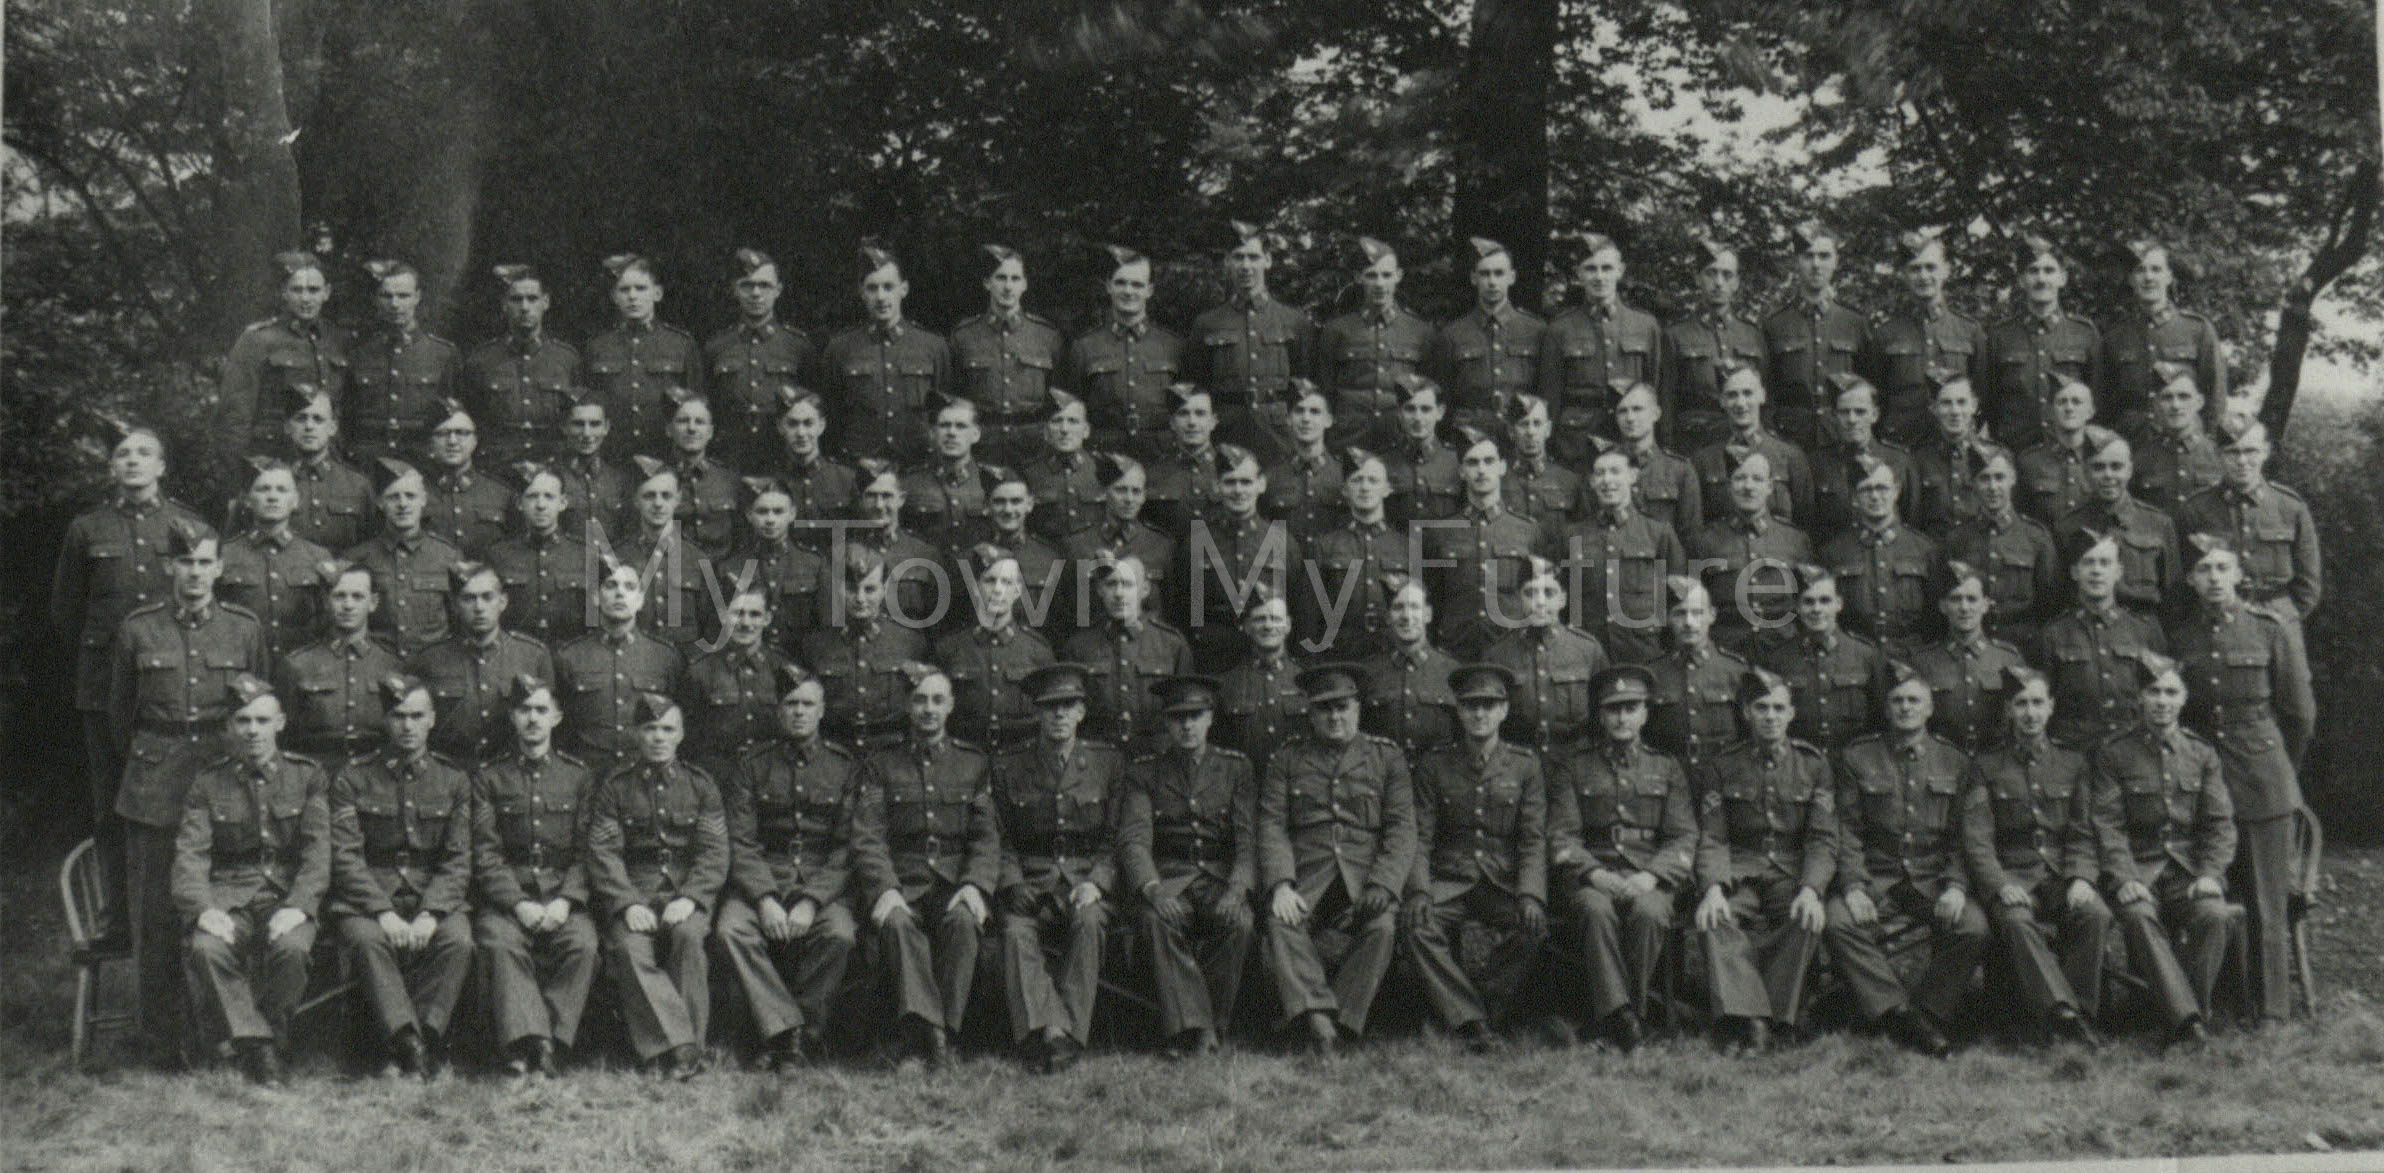 The 7th AA Division Signals T.A.